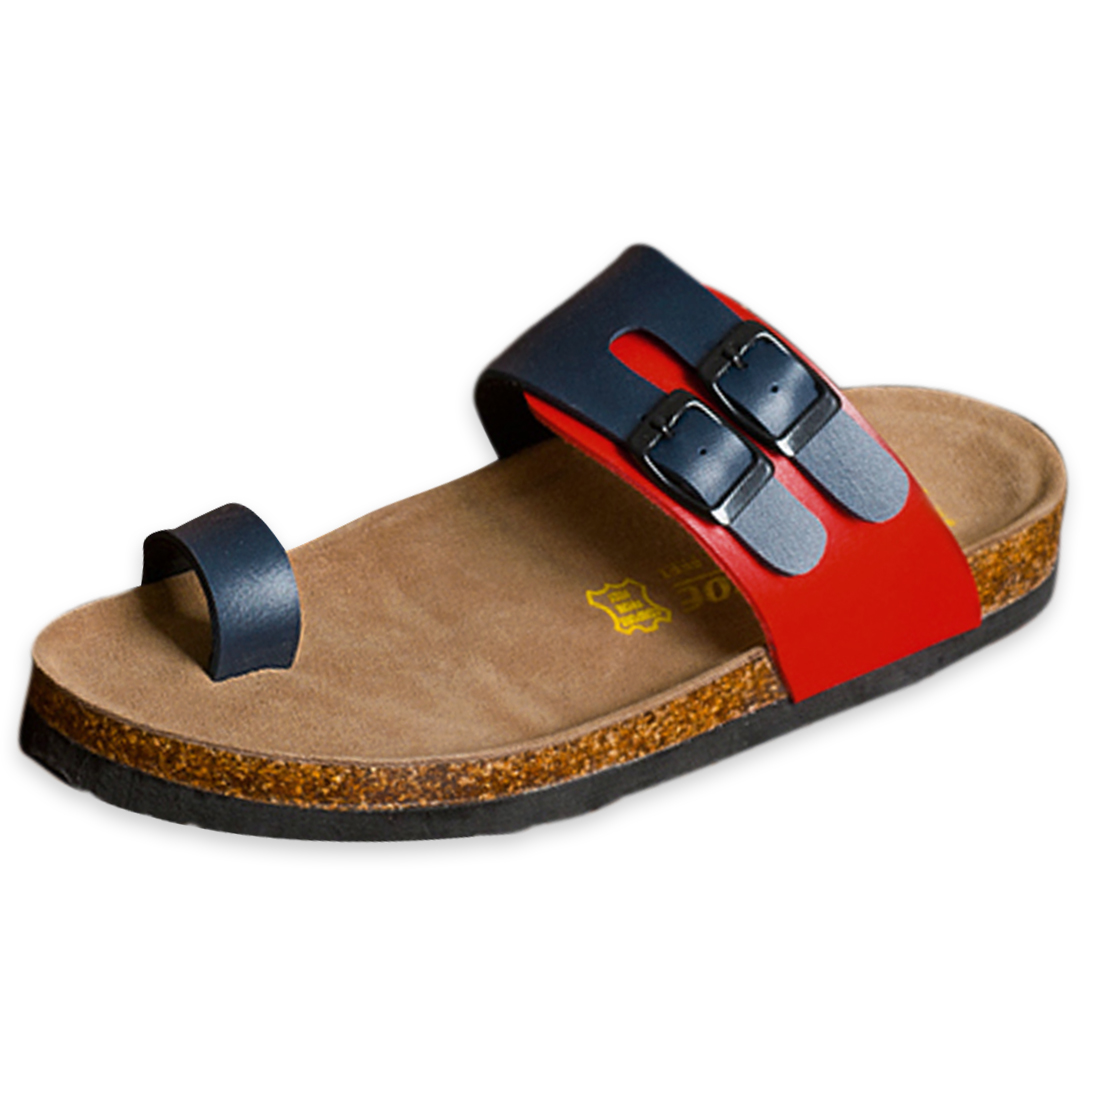 Blue Red US Size 8 Featuring Summer Fashion Design Sandal for Men